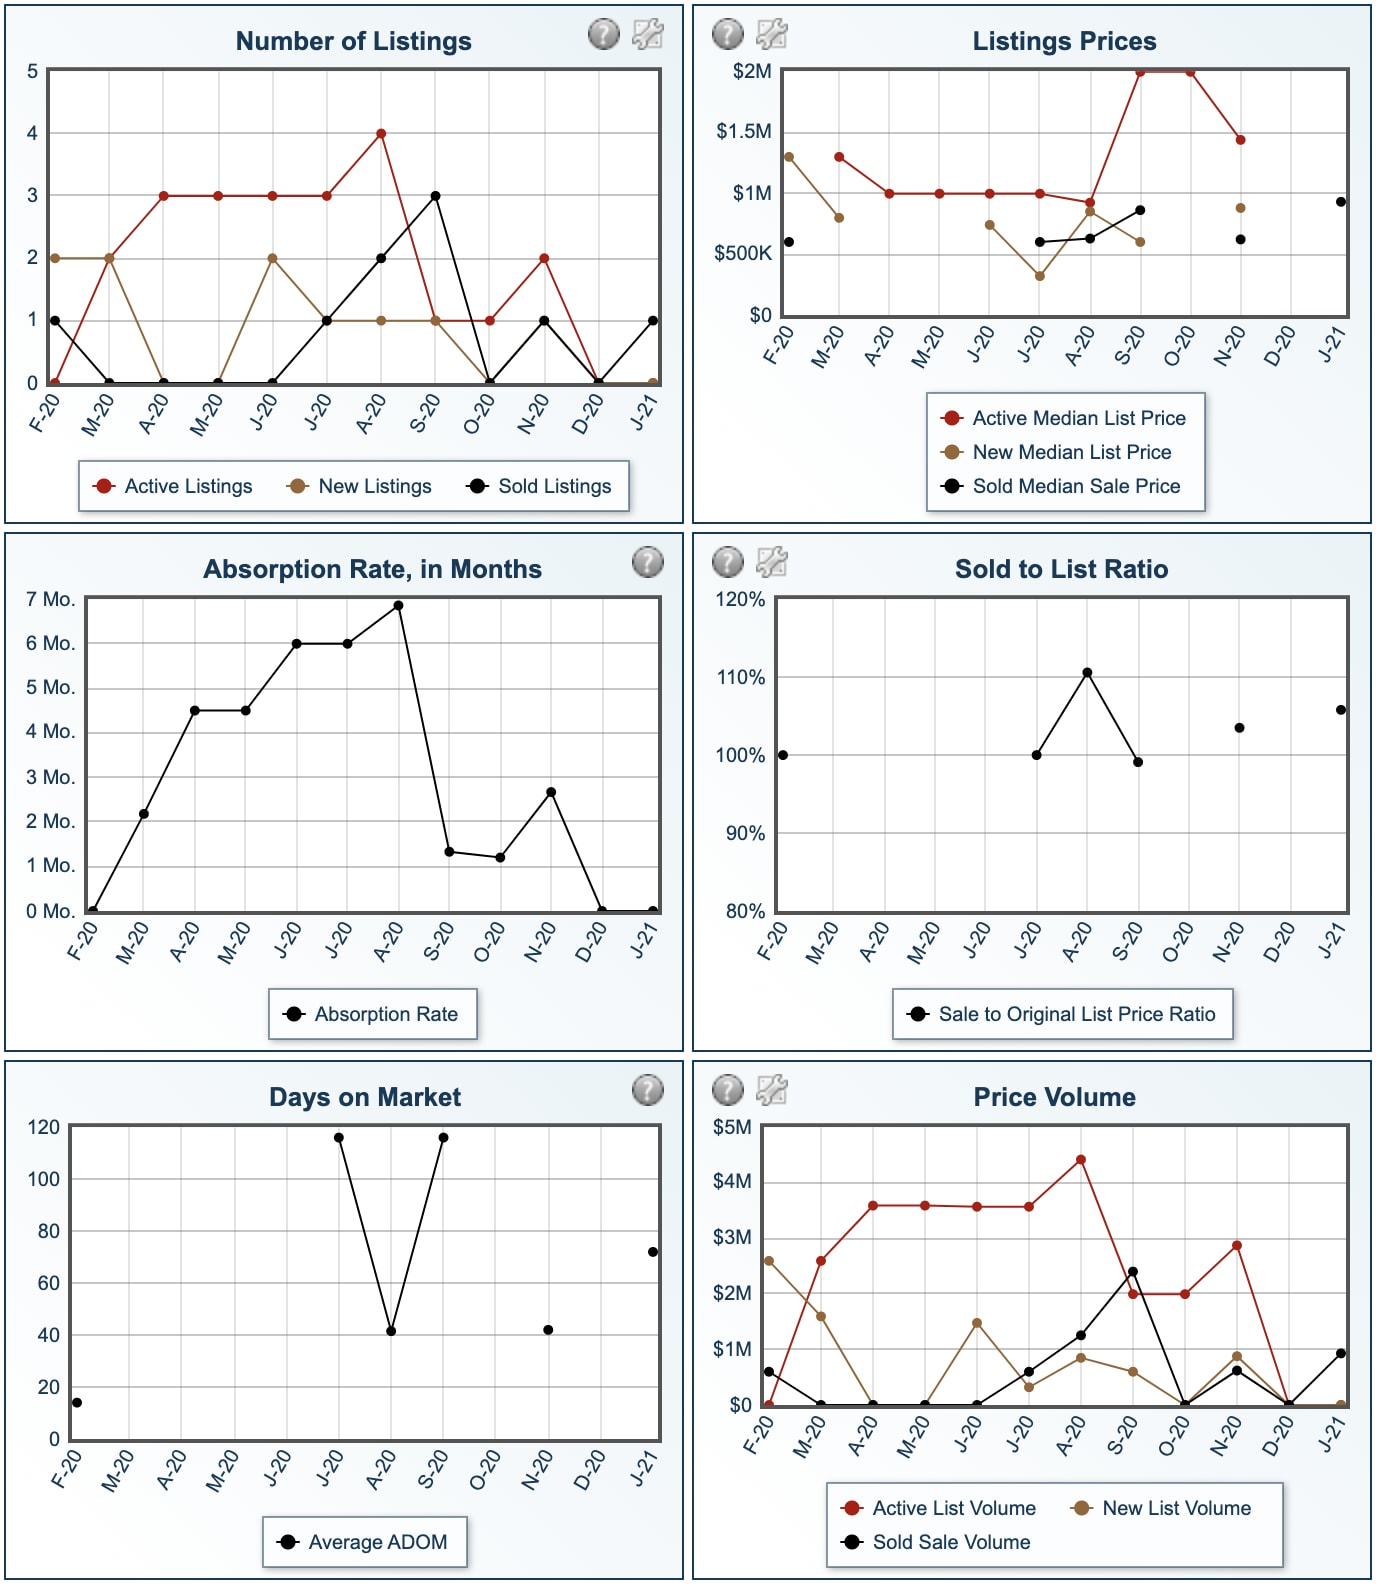 Neahkahnie Real Estate Number of Listings, Listing Prices, Absorption Rate in Months, Sold to List Ratio, Days on Market and Price Volume plotted in Graph form.